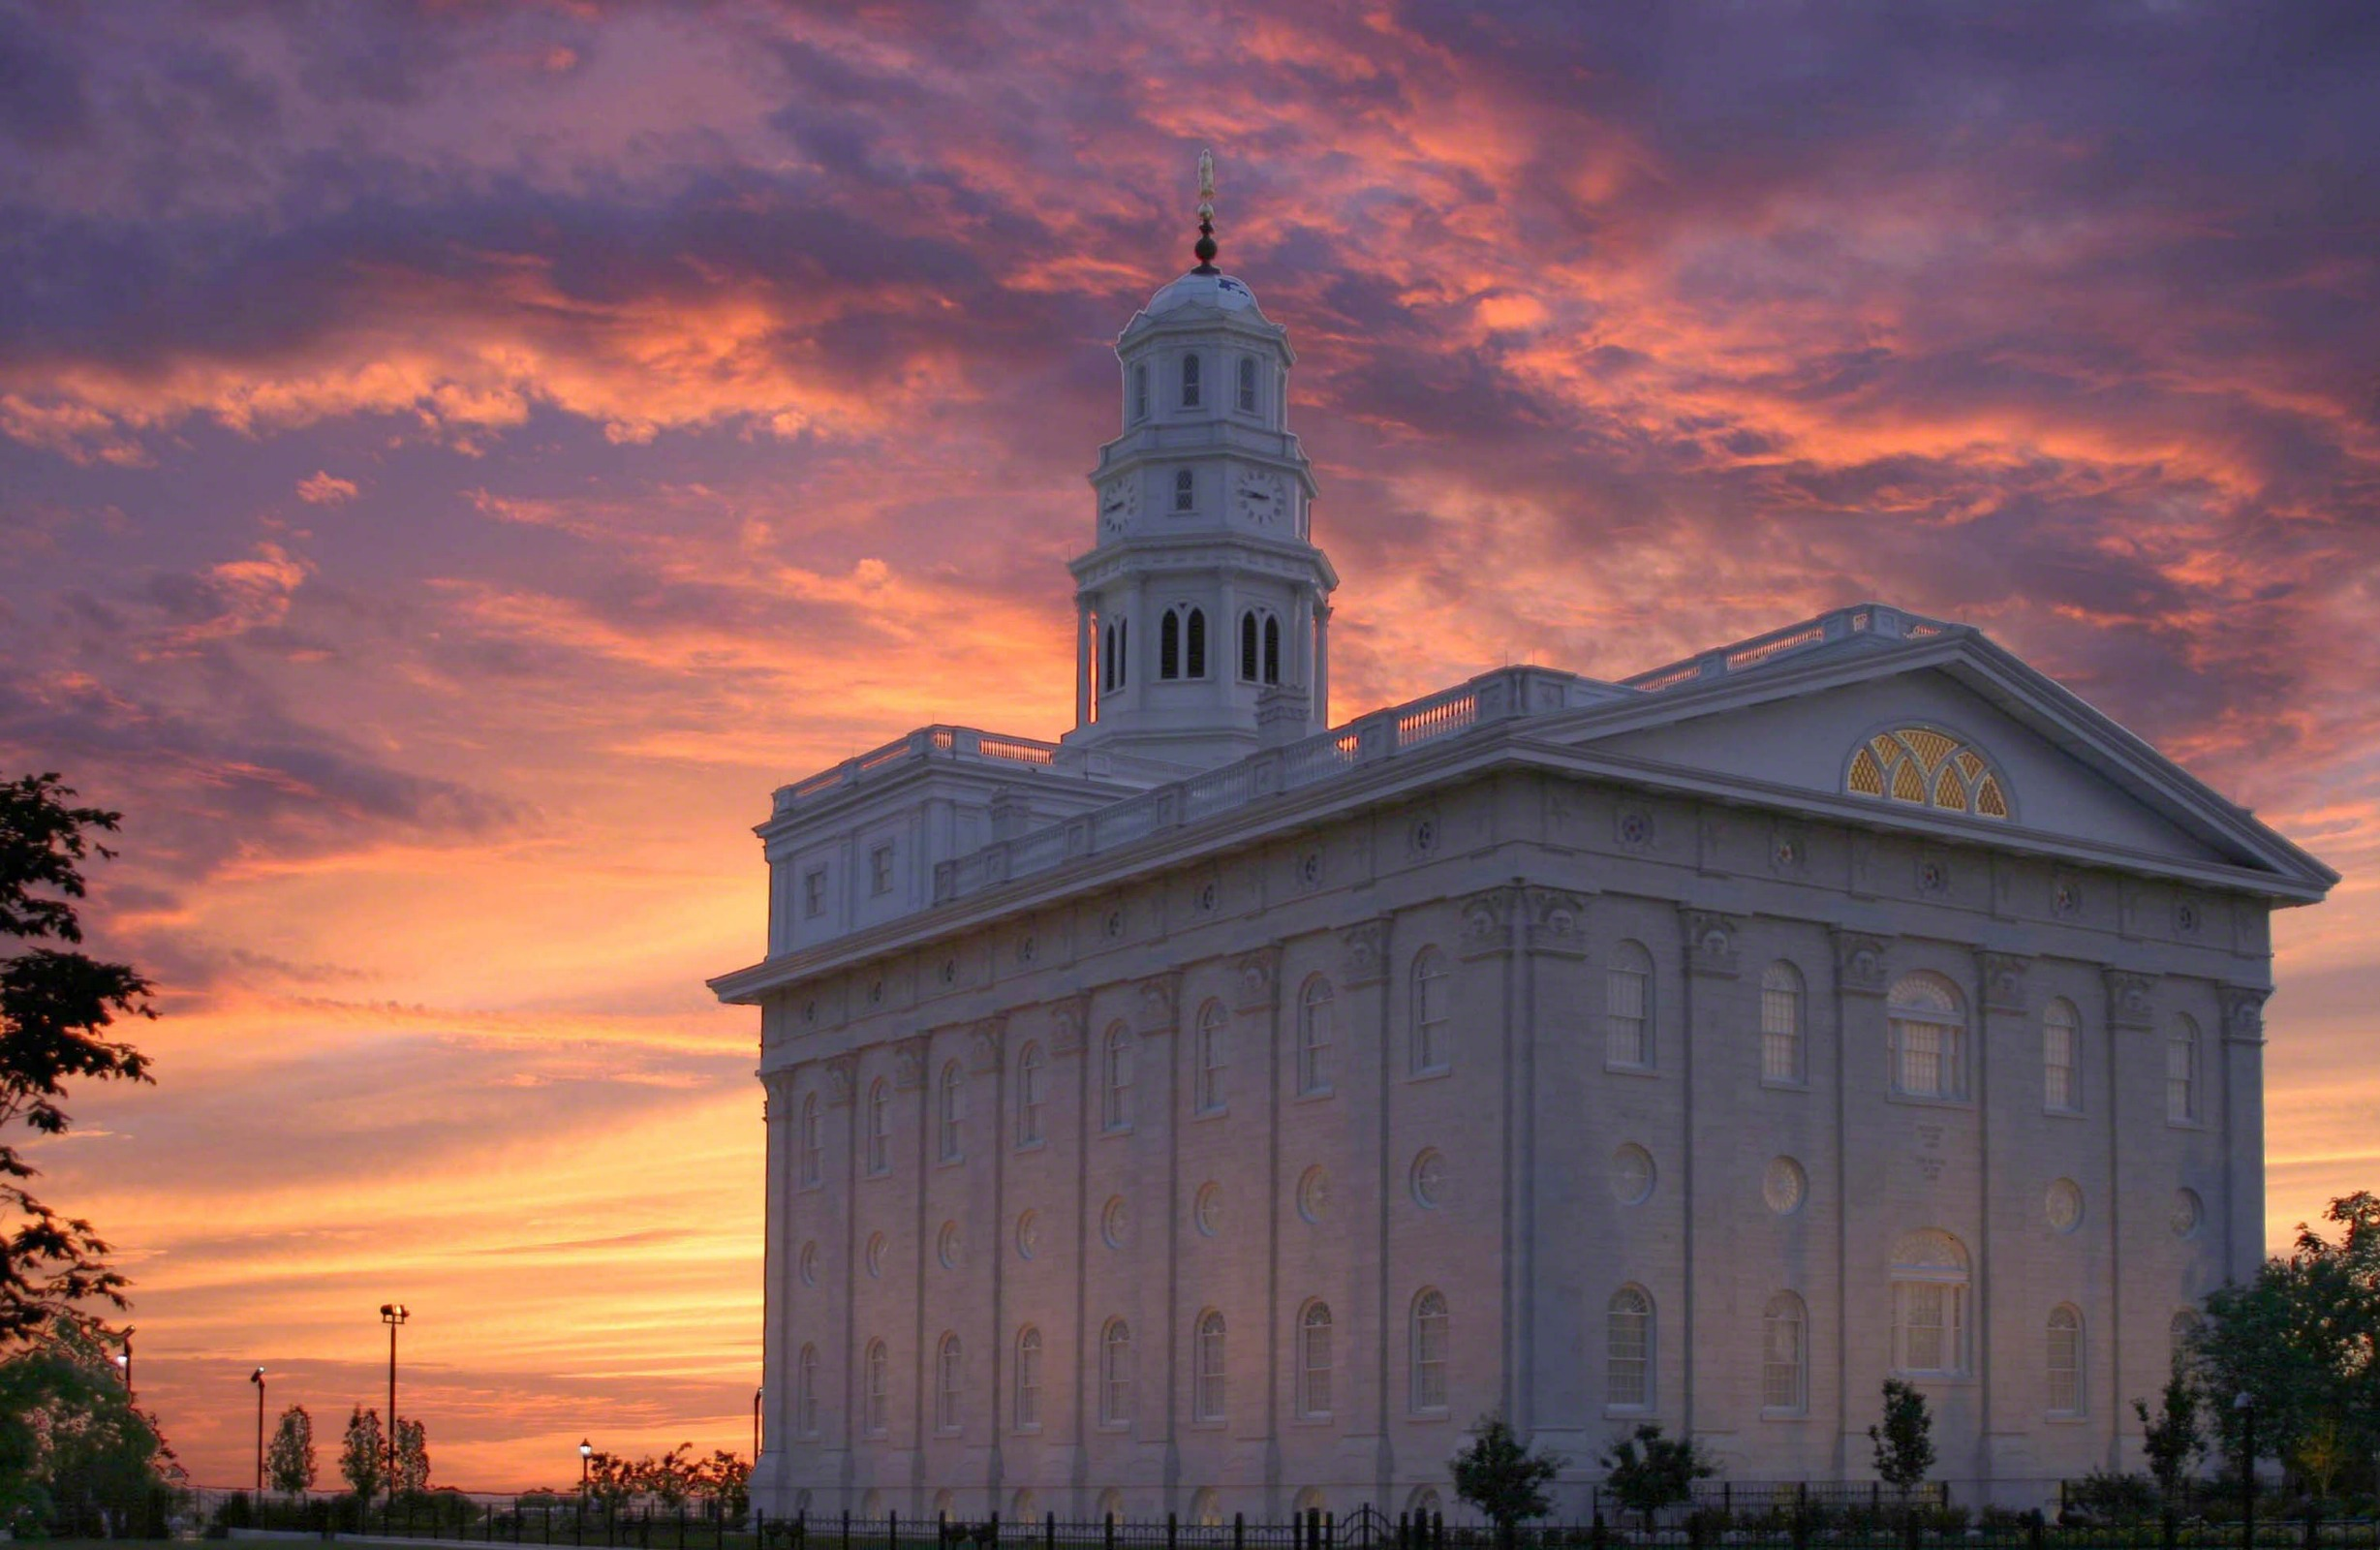 nauvoo-temple-756499-wallpaper.jpg